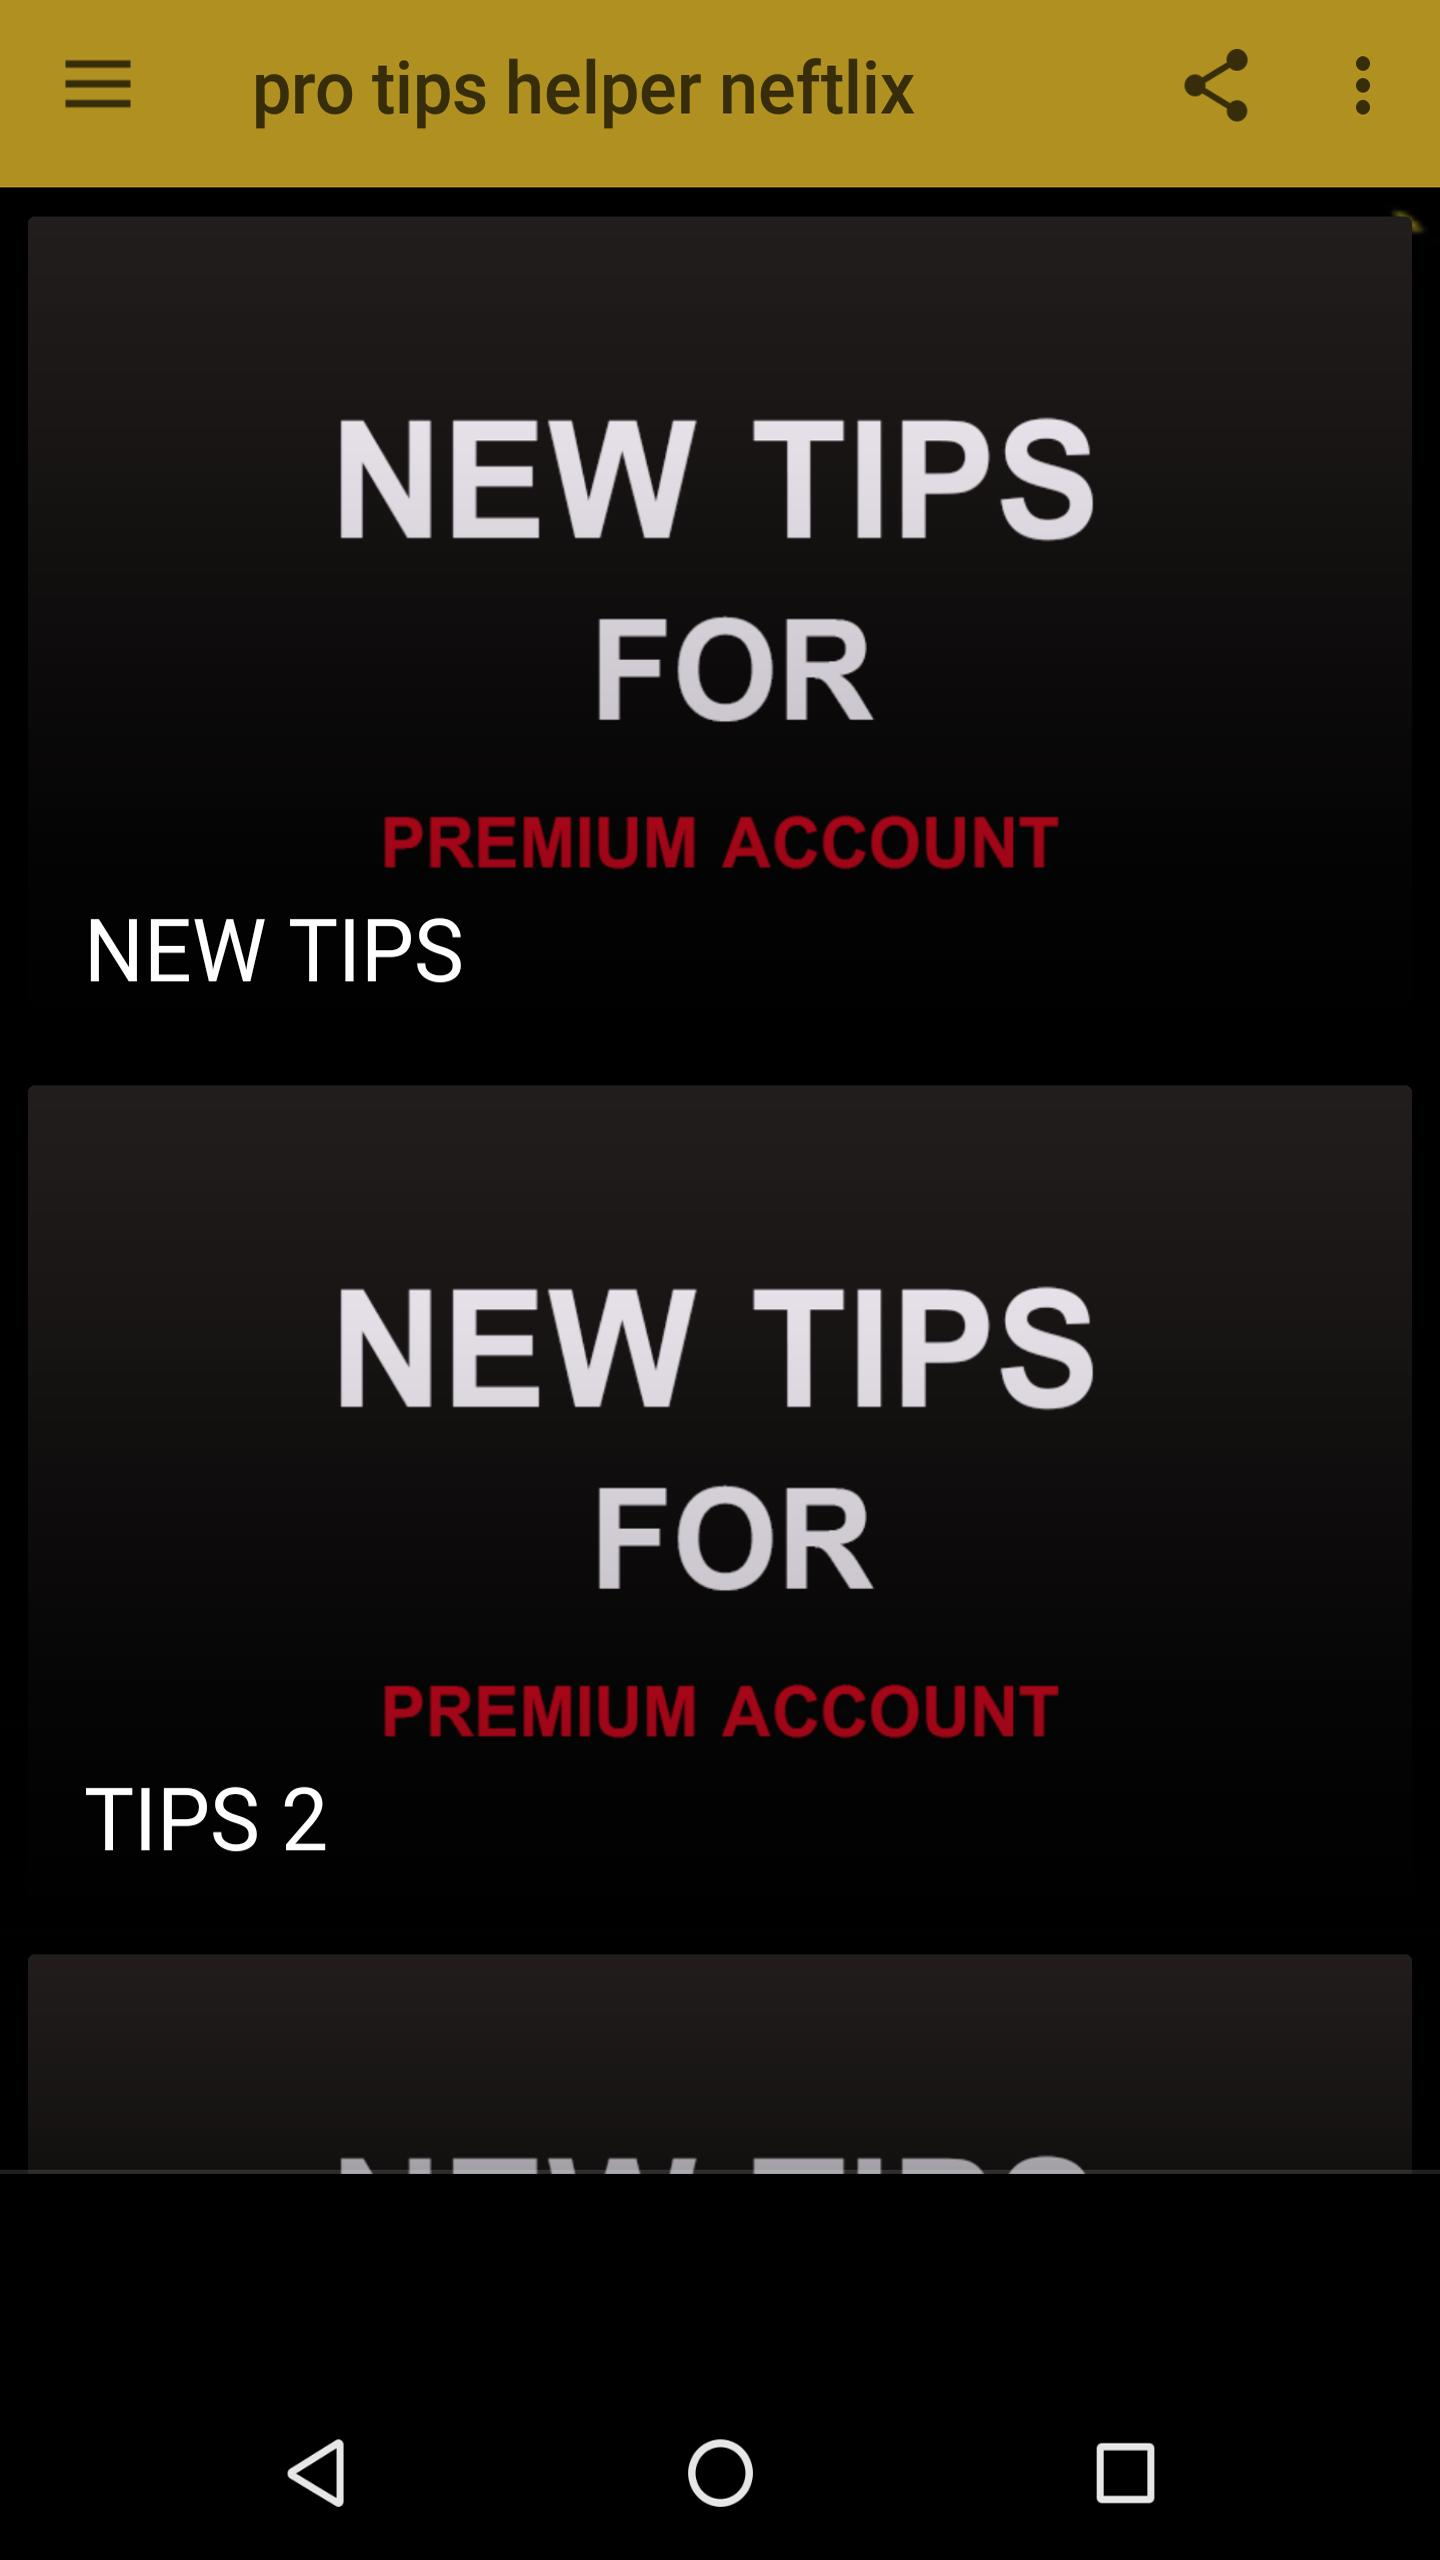 pro tips free netflix premium accounts 2019 for Android